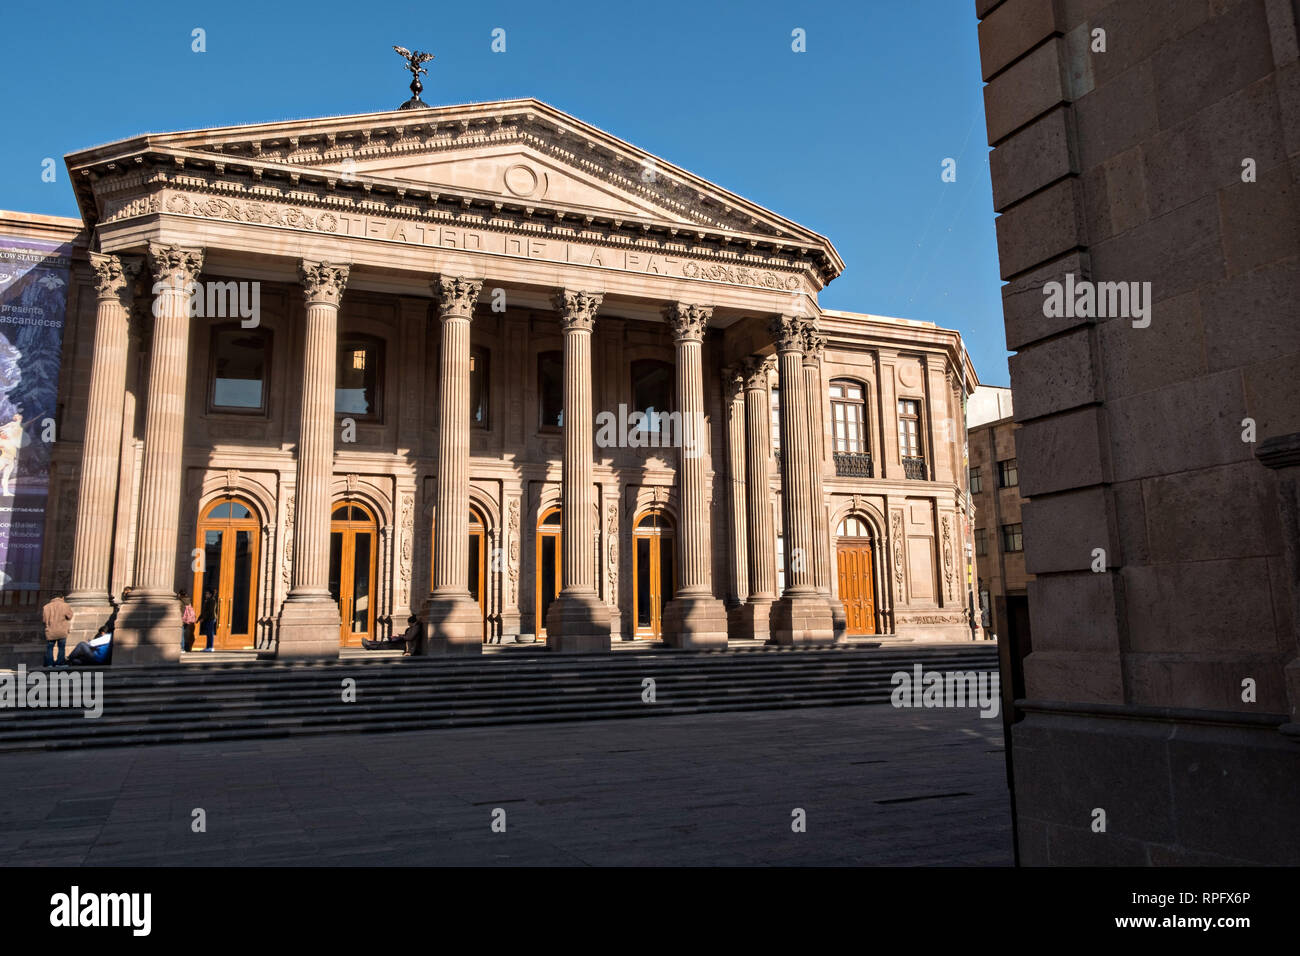 The Teatro de la Paz or Theater of Peace in the historic center on the Plaza del Carmen in the state capital of San Luis Potosi, Mexico. The building was built by the architect Jose Noriega with French influences and neoclassical style, with its facade in pink quarry in 1894. Stock Photo